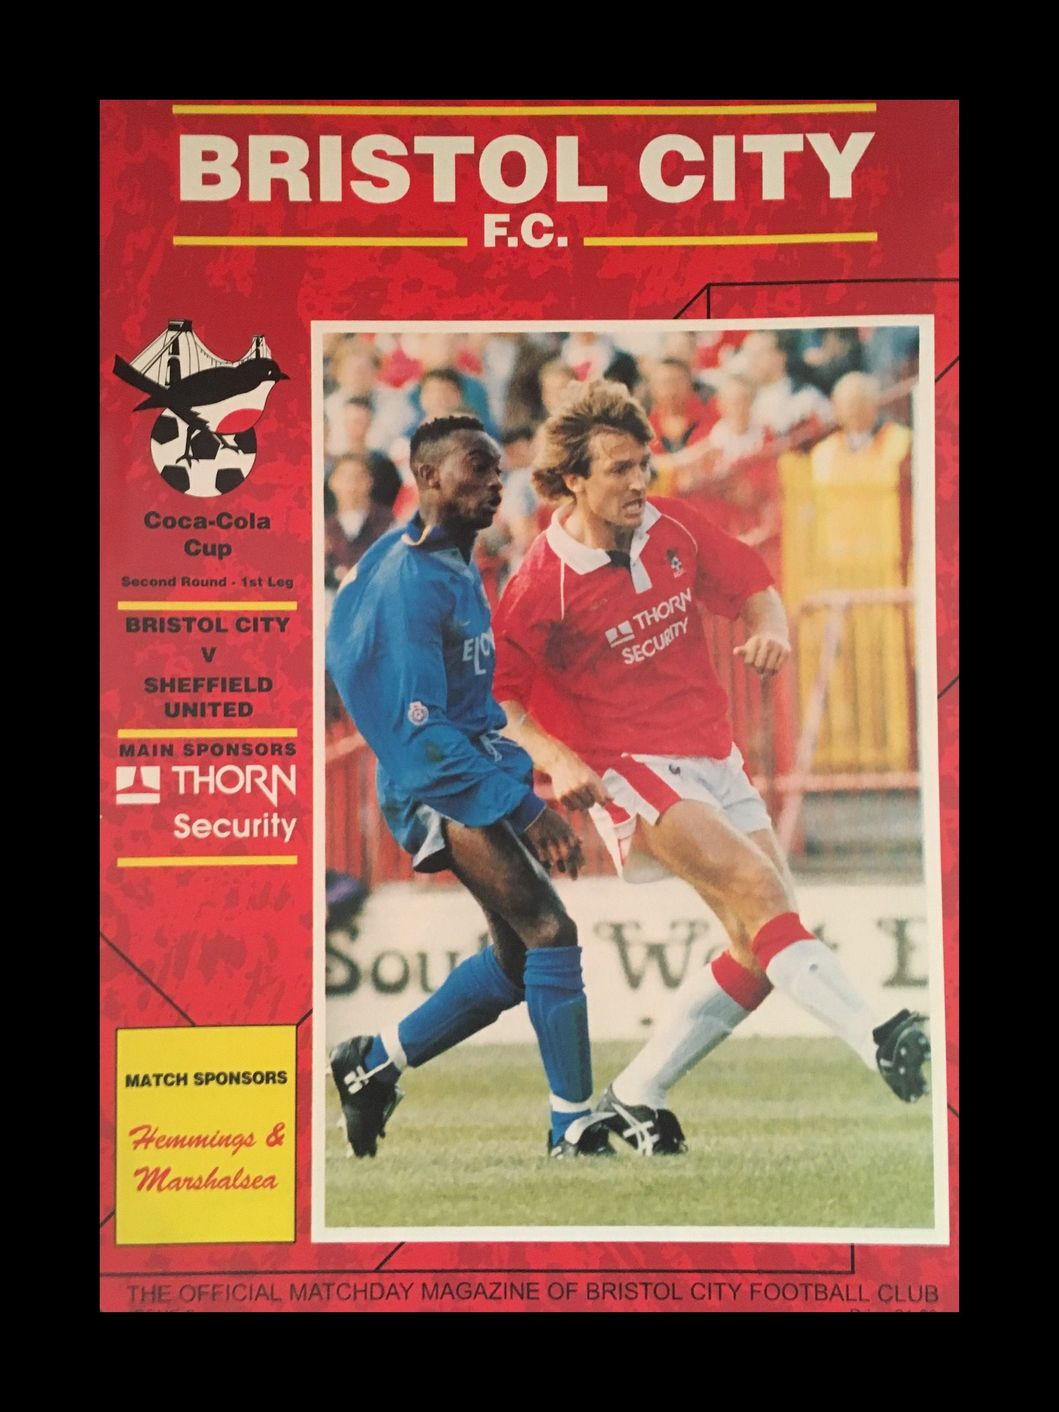 Bristol City v Sheffield United 22-09-1992 Programme